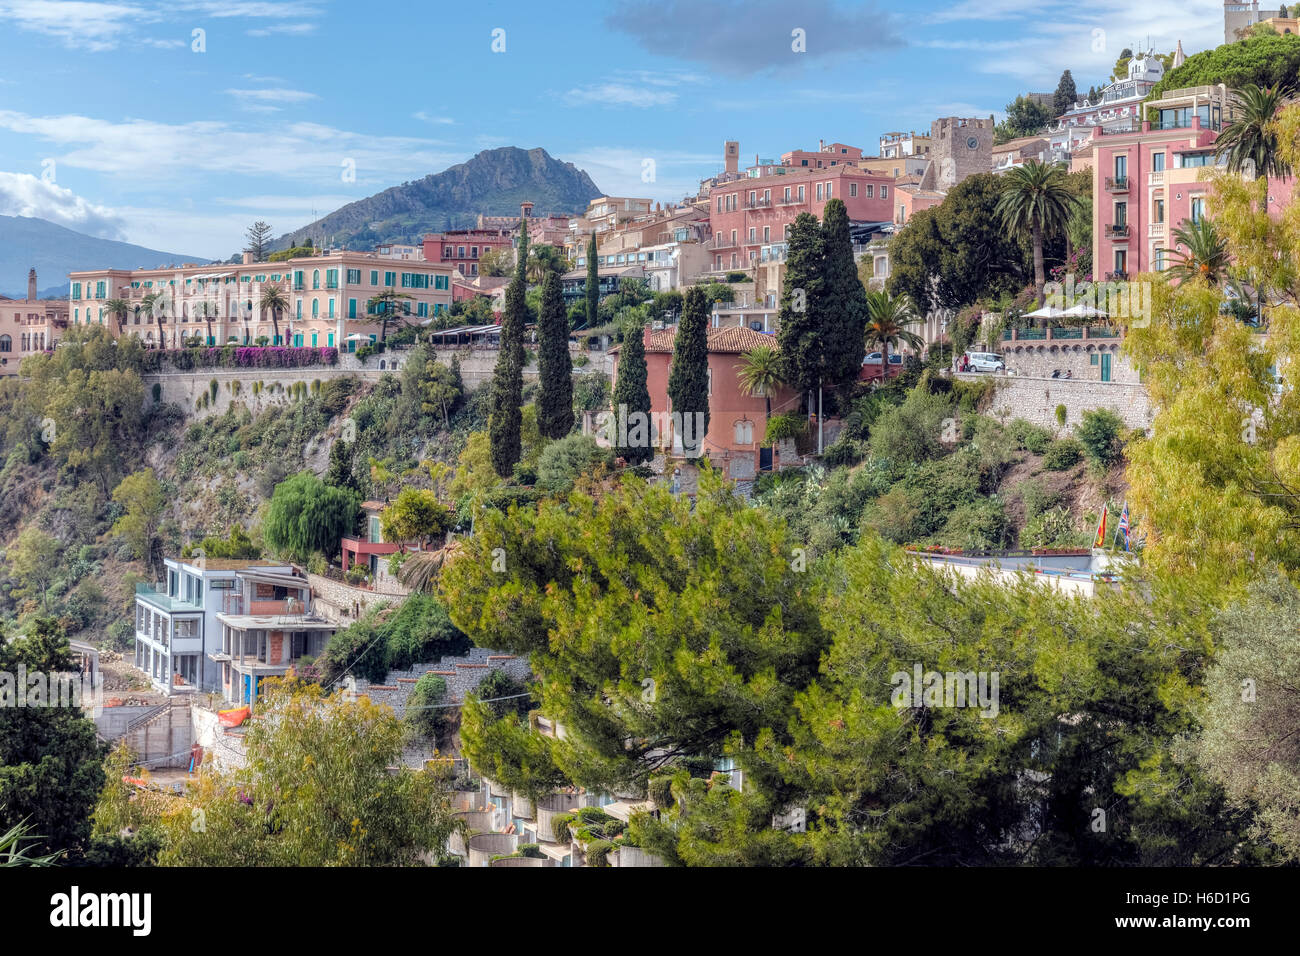 Taormina, Messina, Sizilien, Italien Stockbild